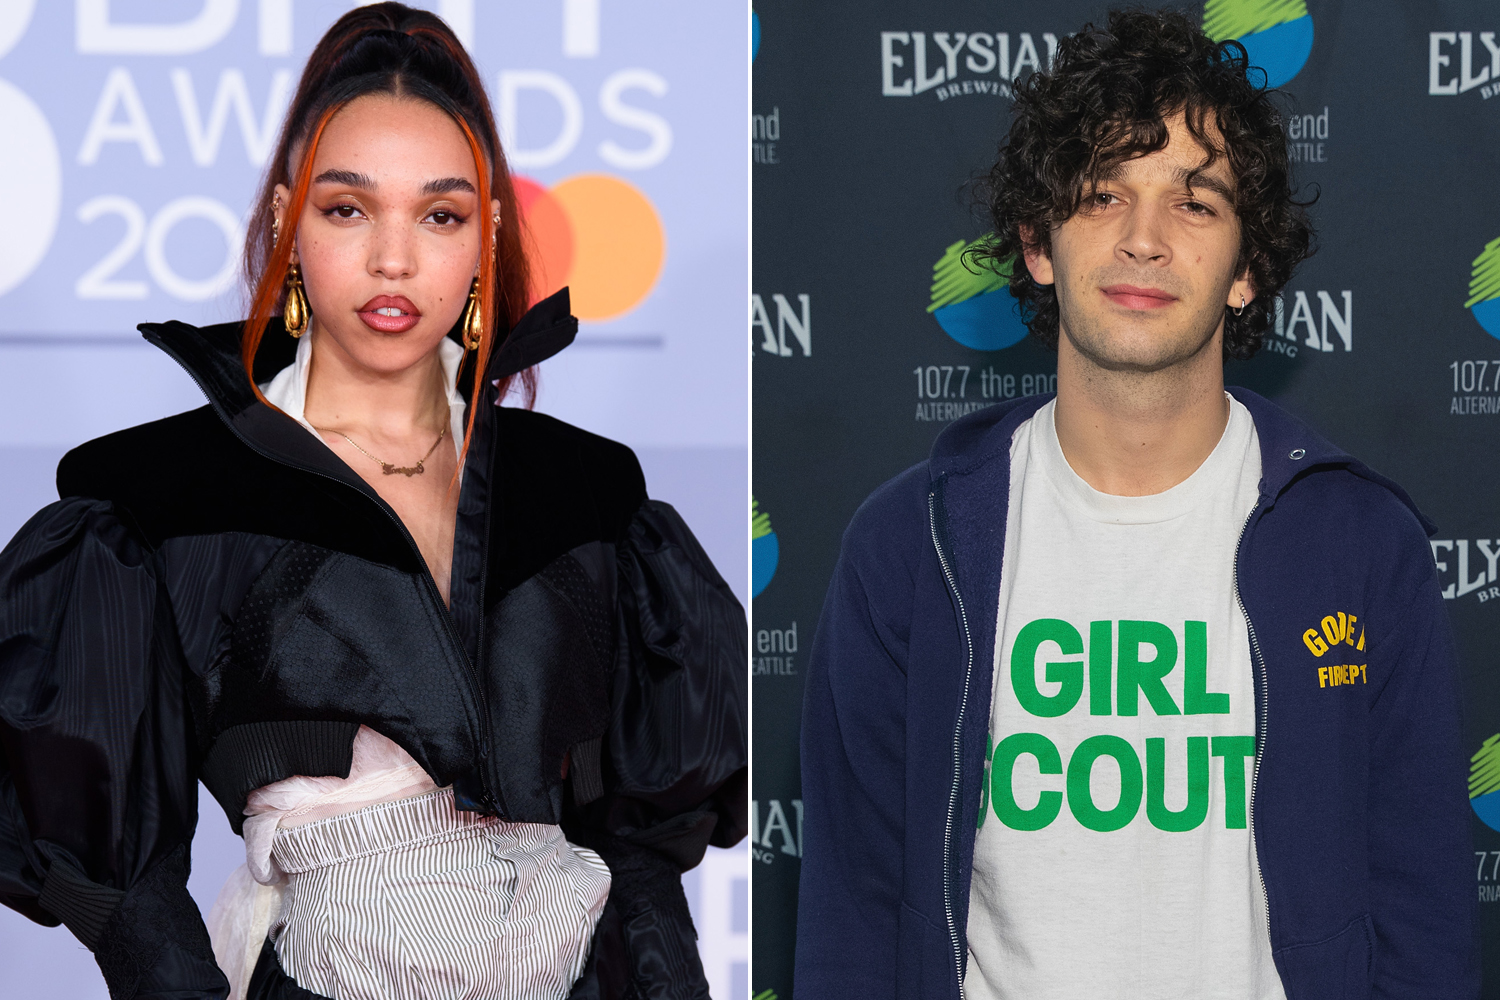 Matty Healy praises girlfriend FKA Twigs amid Shia LaBeouf lawsuit